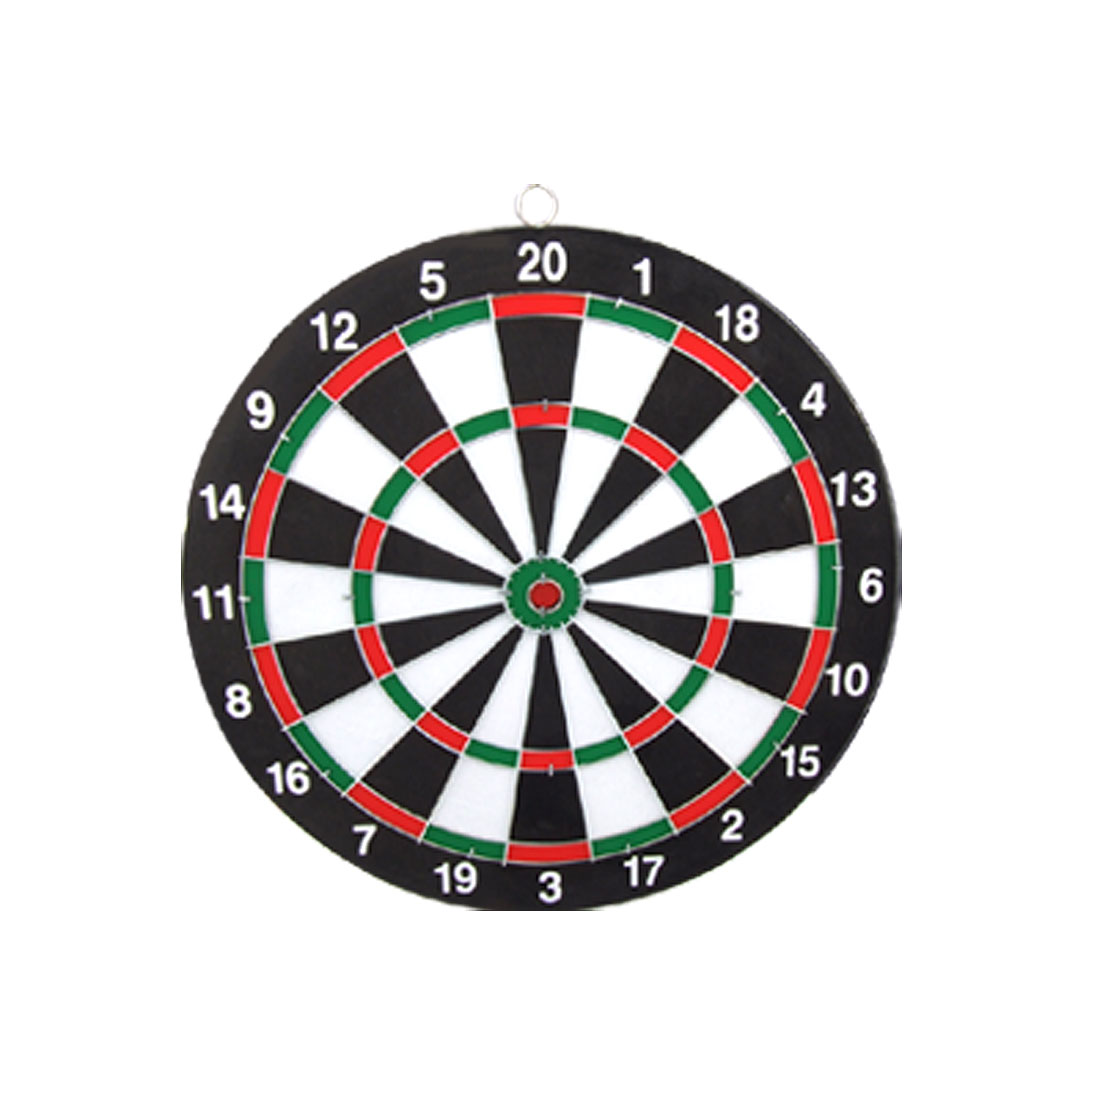 11.7 Inch Dart Board Dartboard Game Toy with 4 Darts